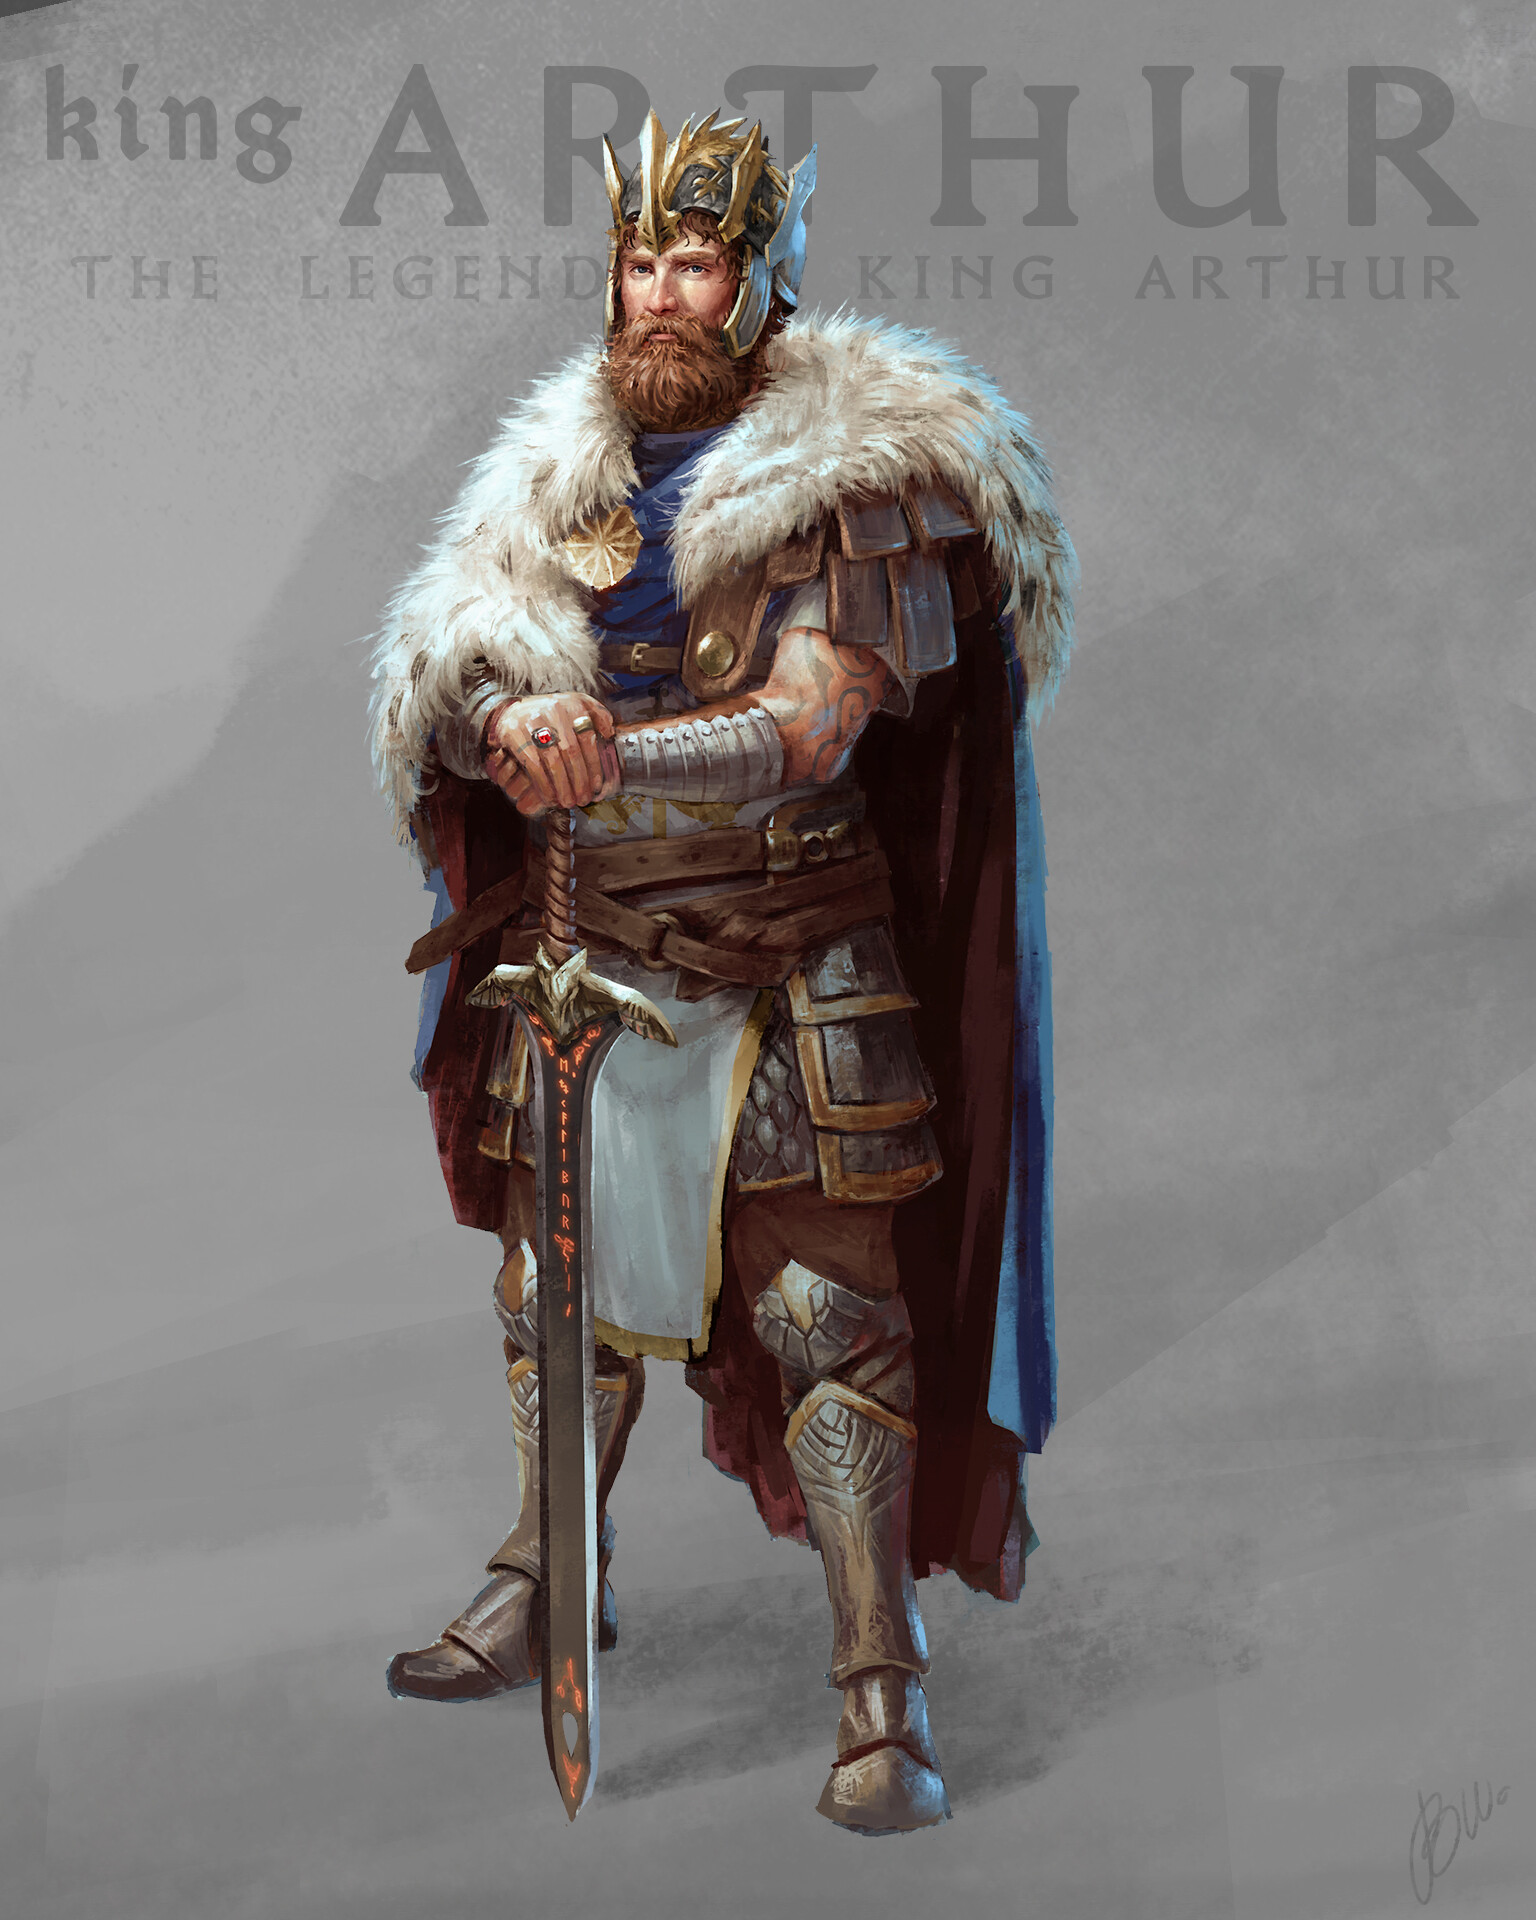 All grown up and with a couple of great fights under his belt, King Arthur now stands bold and wise.  Azure blue and gold are his traditional colors. Added white for purity, all colors are a bit linked to christian color meanings like the original story.